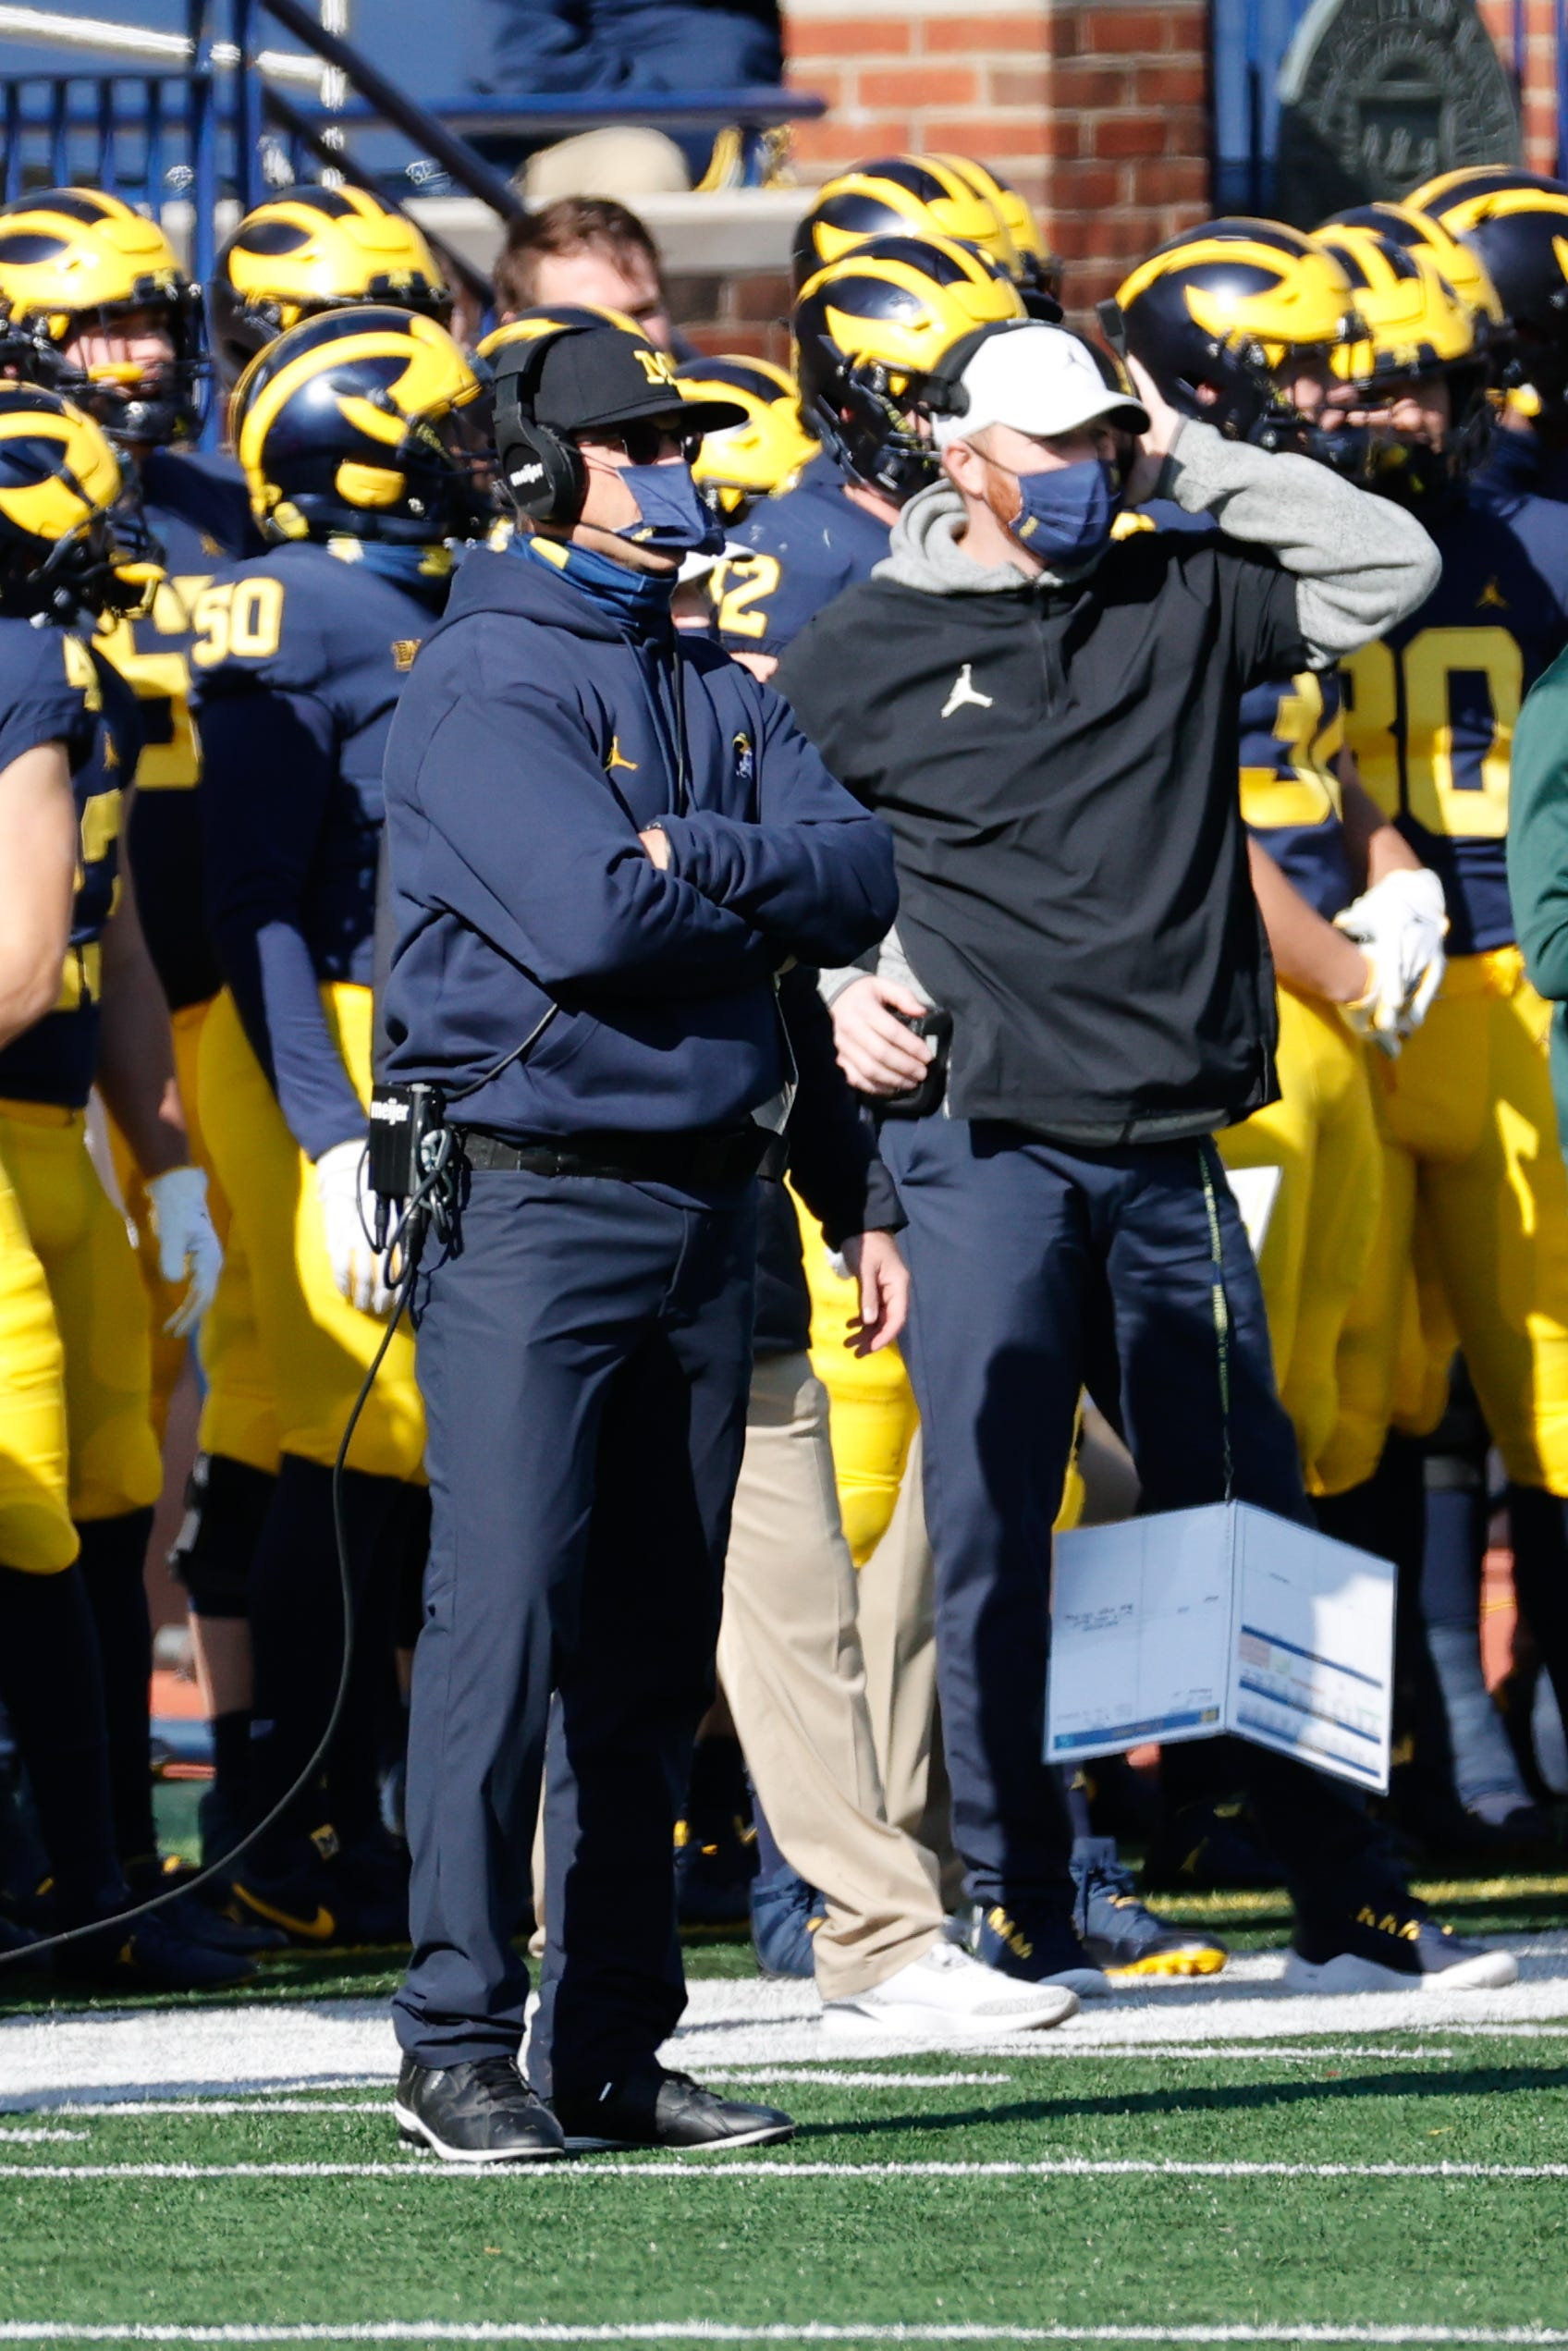 Opinion: Michigan's latest loss is more reason to believe Jim Harbaugh can't win big there